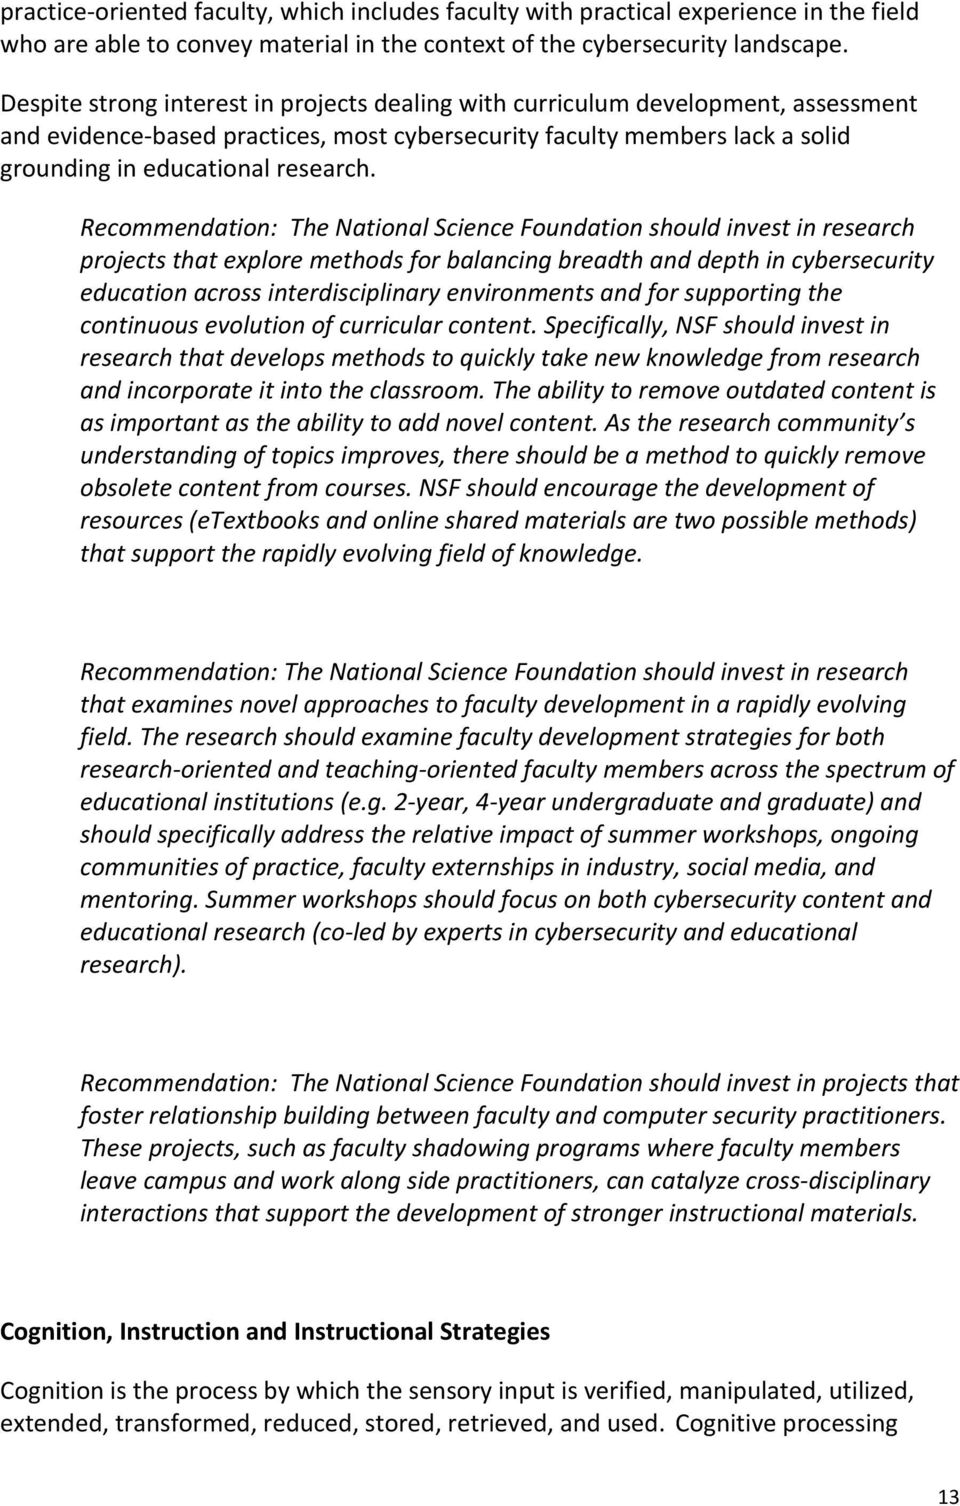 Recommendation: The National Science Foundation should invest in research projects that explore methods for balancing breadth and depth in cybersecurity education across interdisciplinary